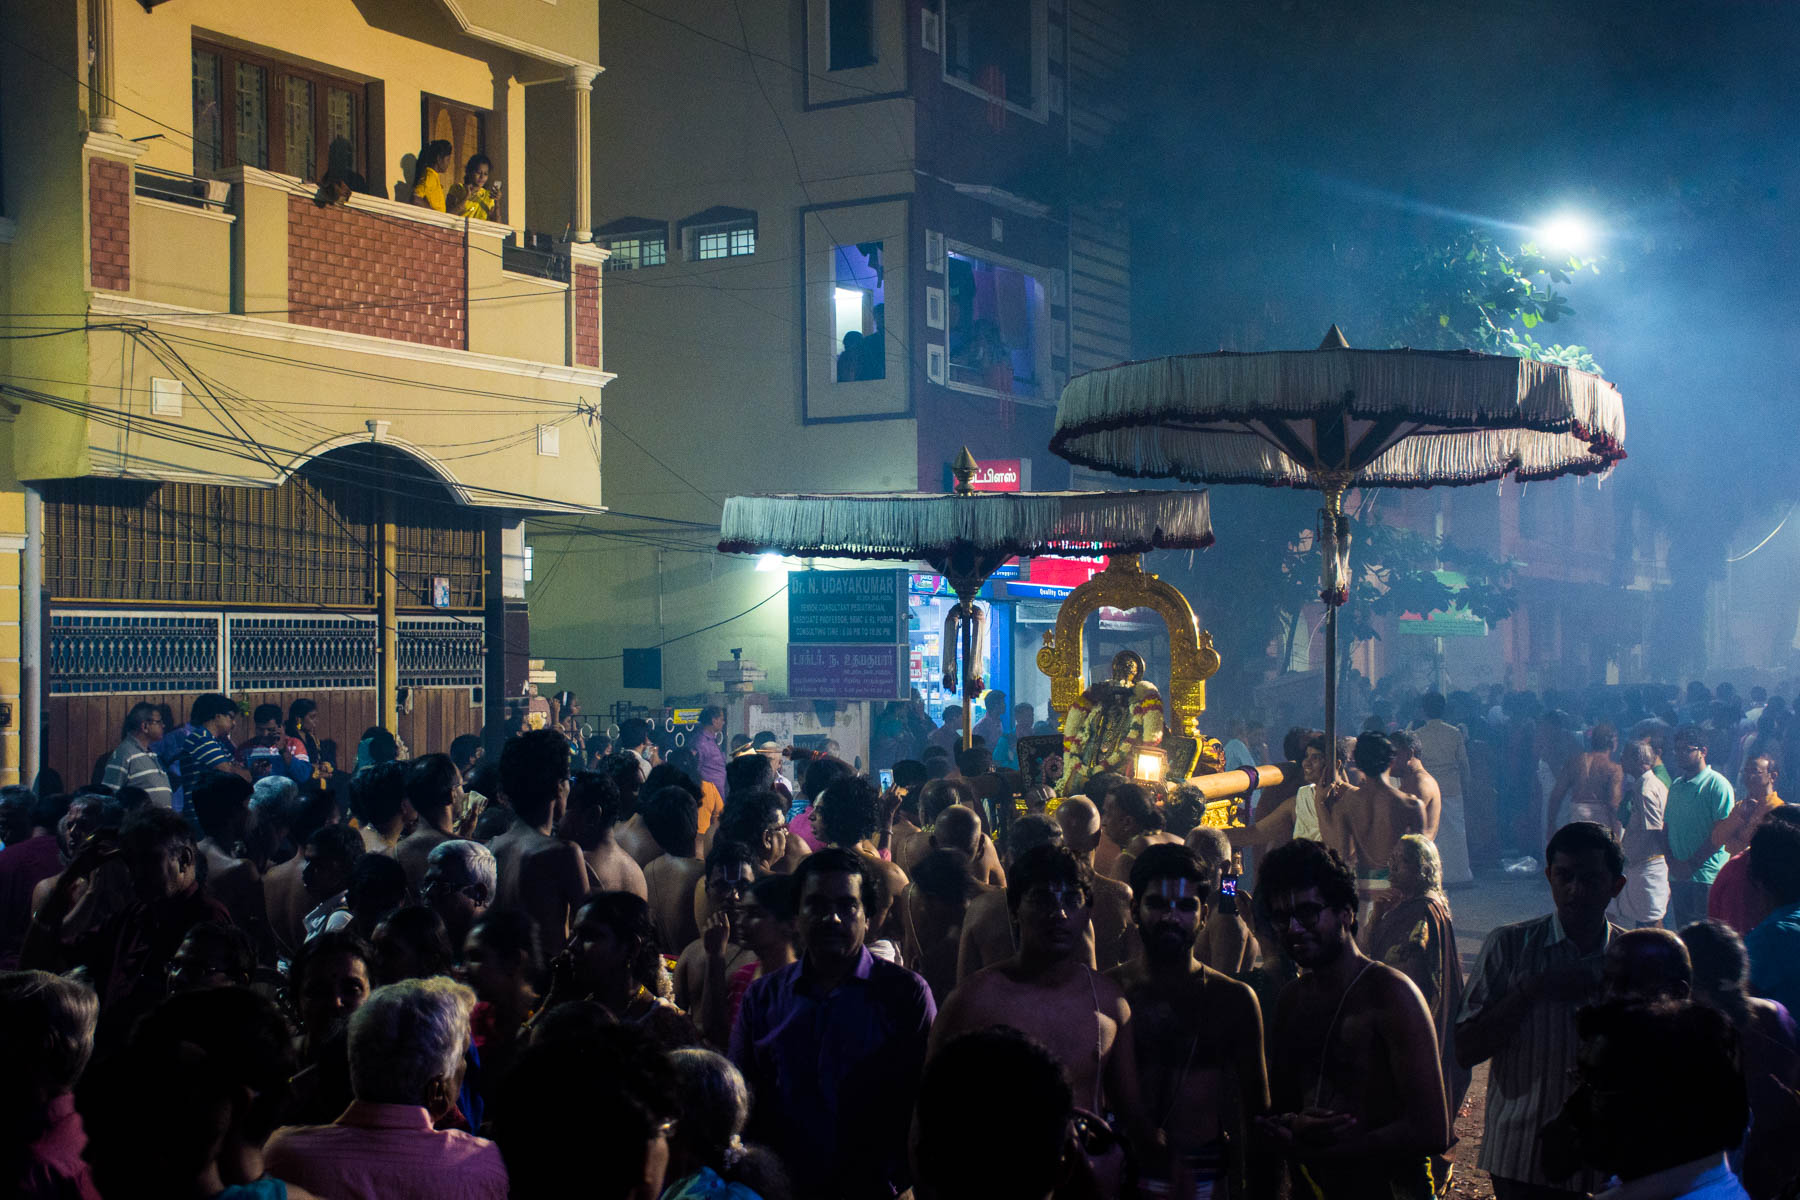 Procession moving through the streets while celebrating Diwali in Chennai, India - Lost With Purpose